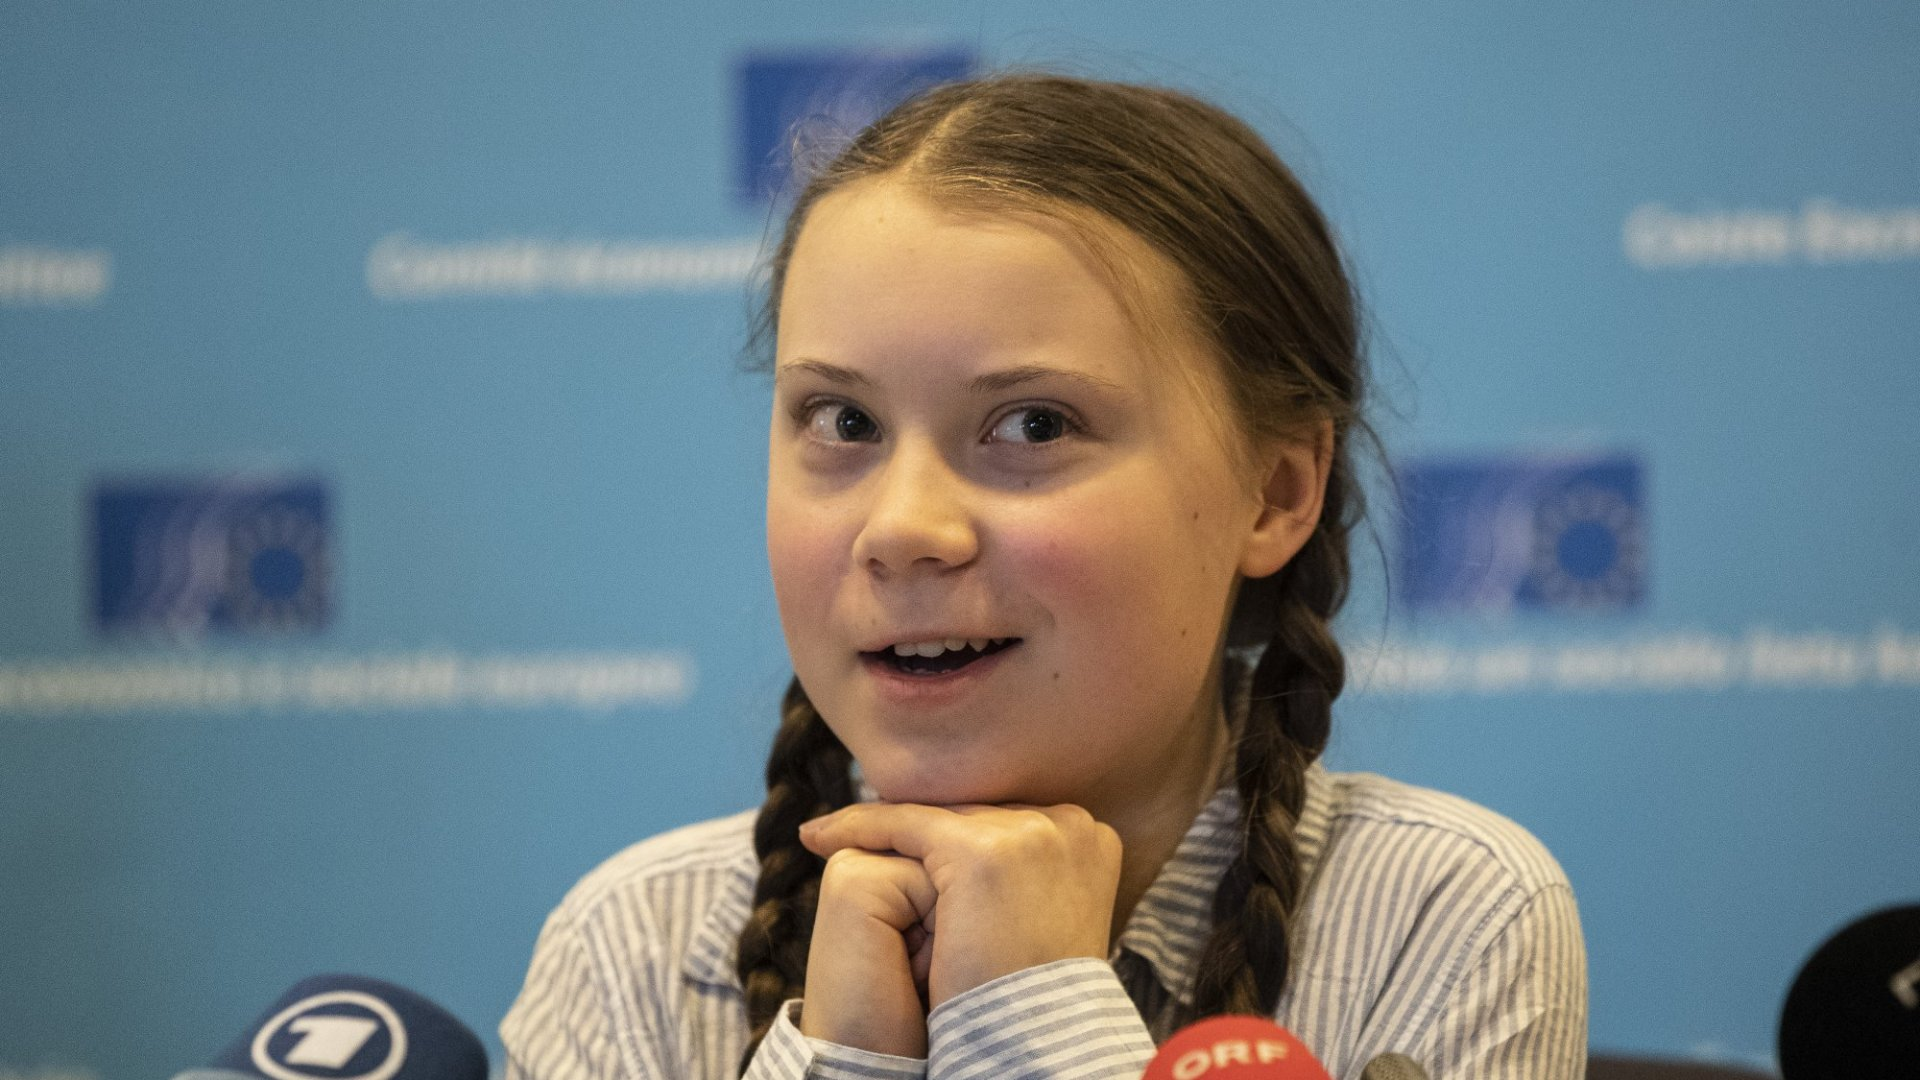 4 Important Business Lessons Teenage Climate Activist Greta Thunberg Can Teach You